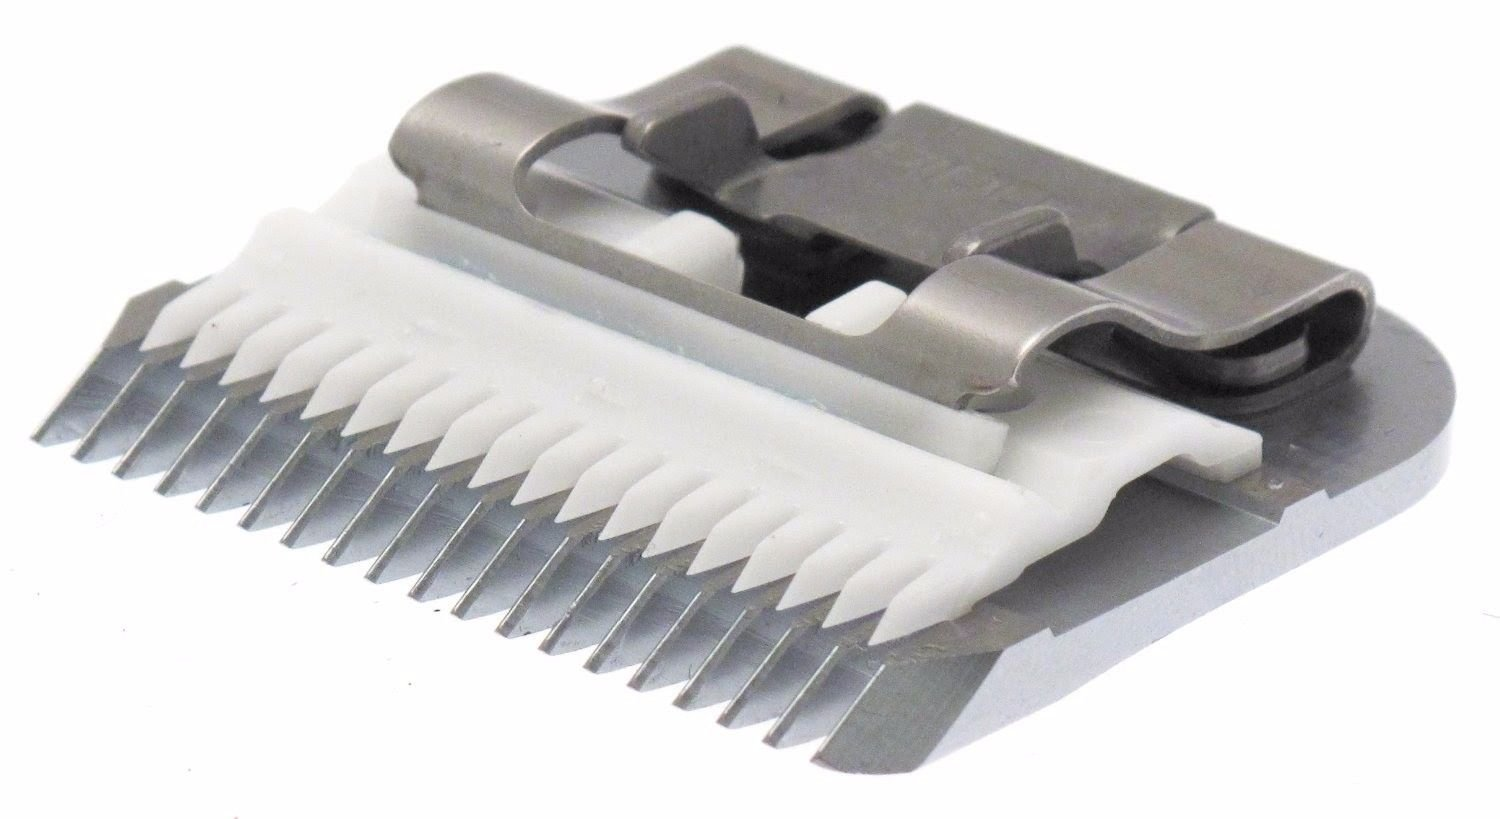 Master Grooming Tools Replacement Ceramic Cutters, All Sizes Except 40